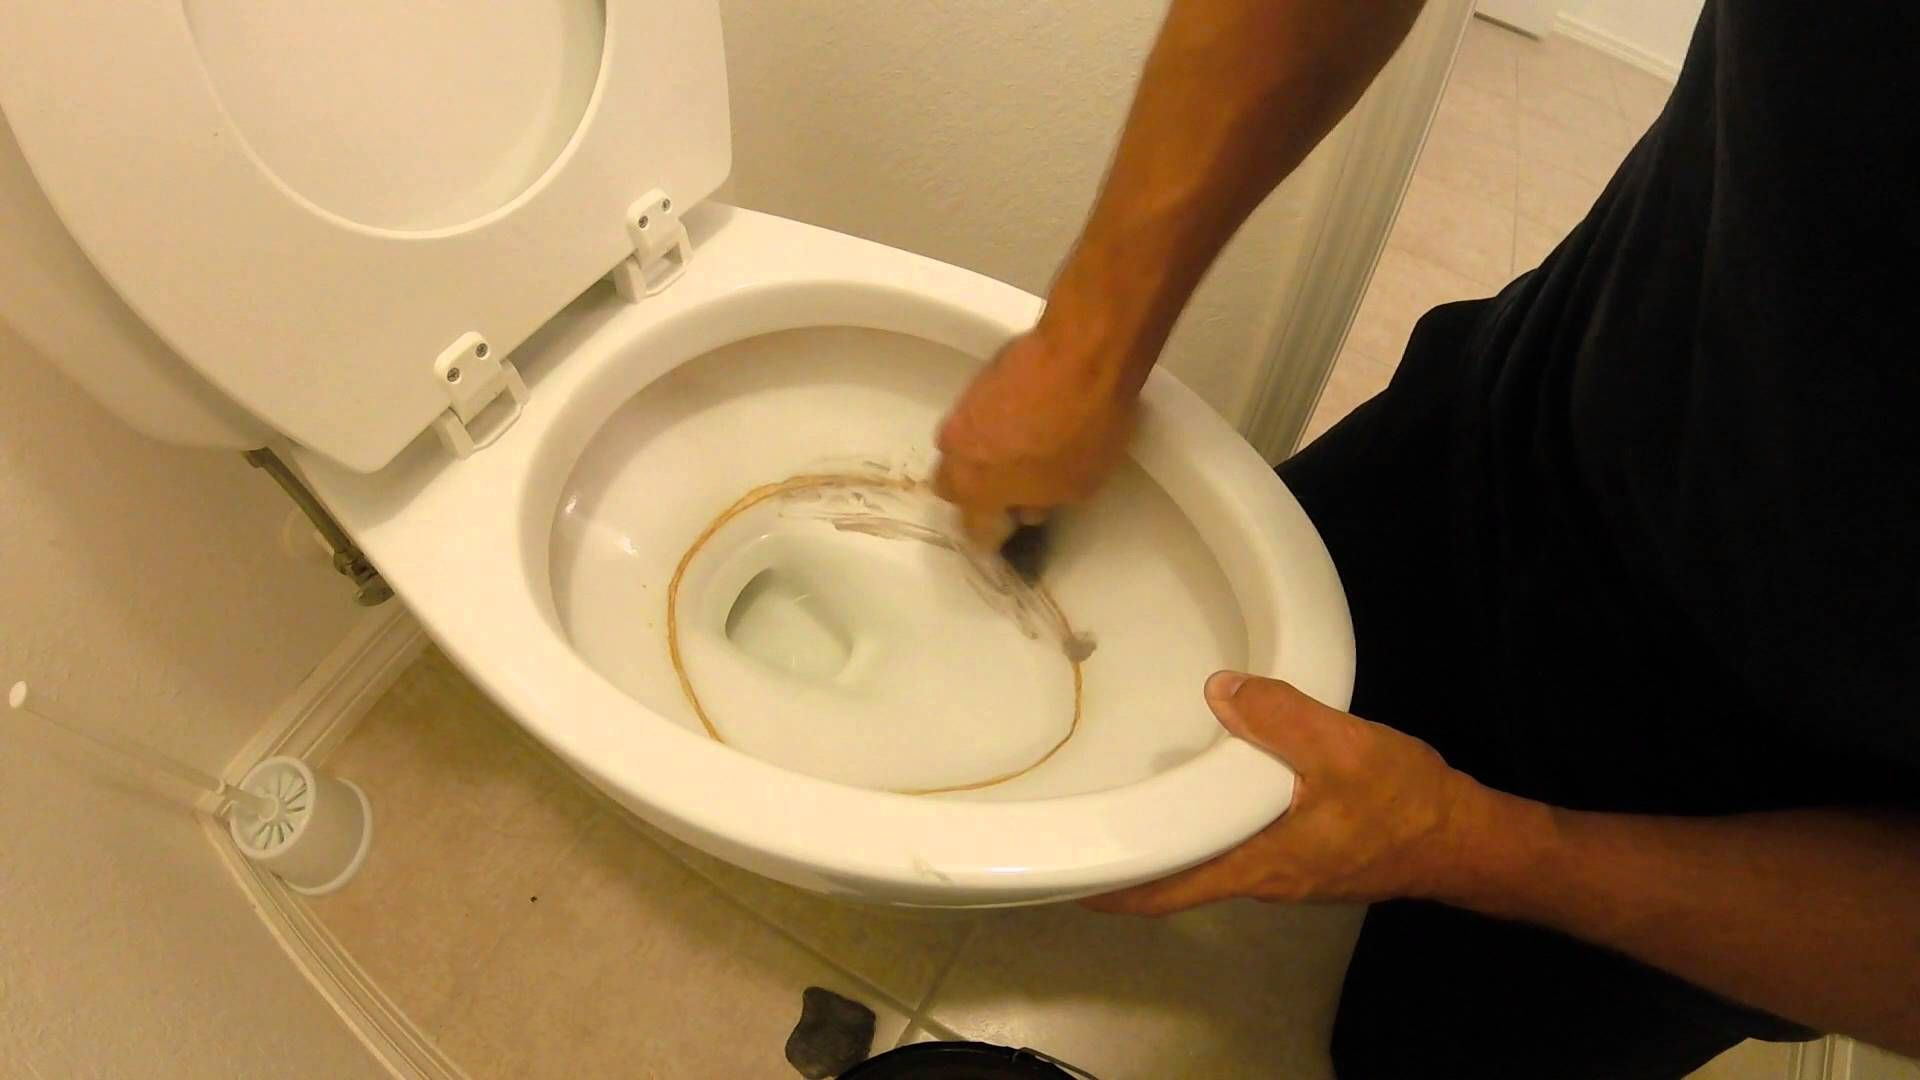 How To Remove Stubborn Toilet Buildup Calcium Deposits Calcium Deposits Calcium Remover Toilet